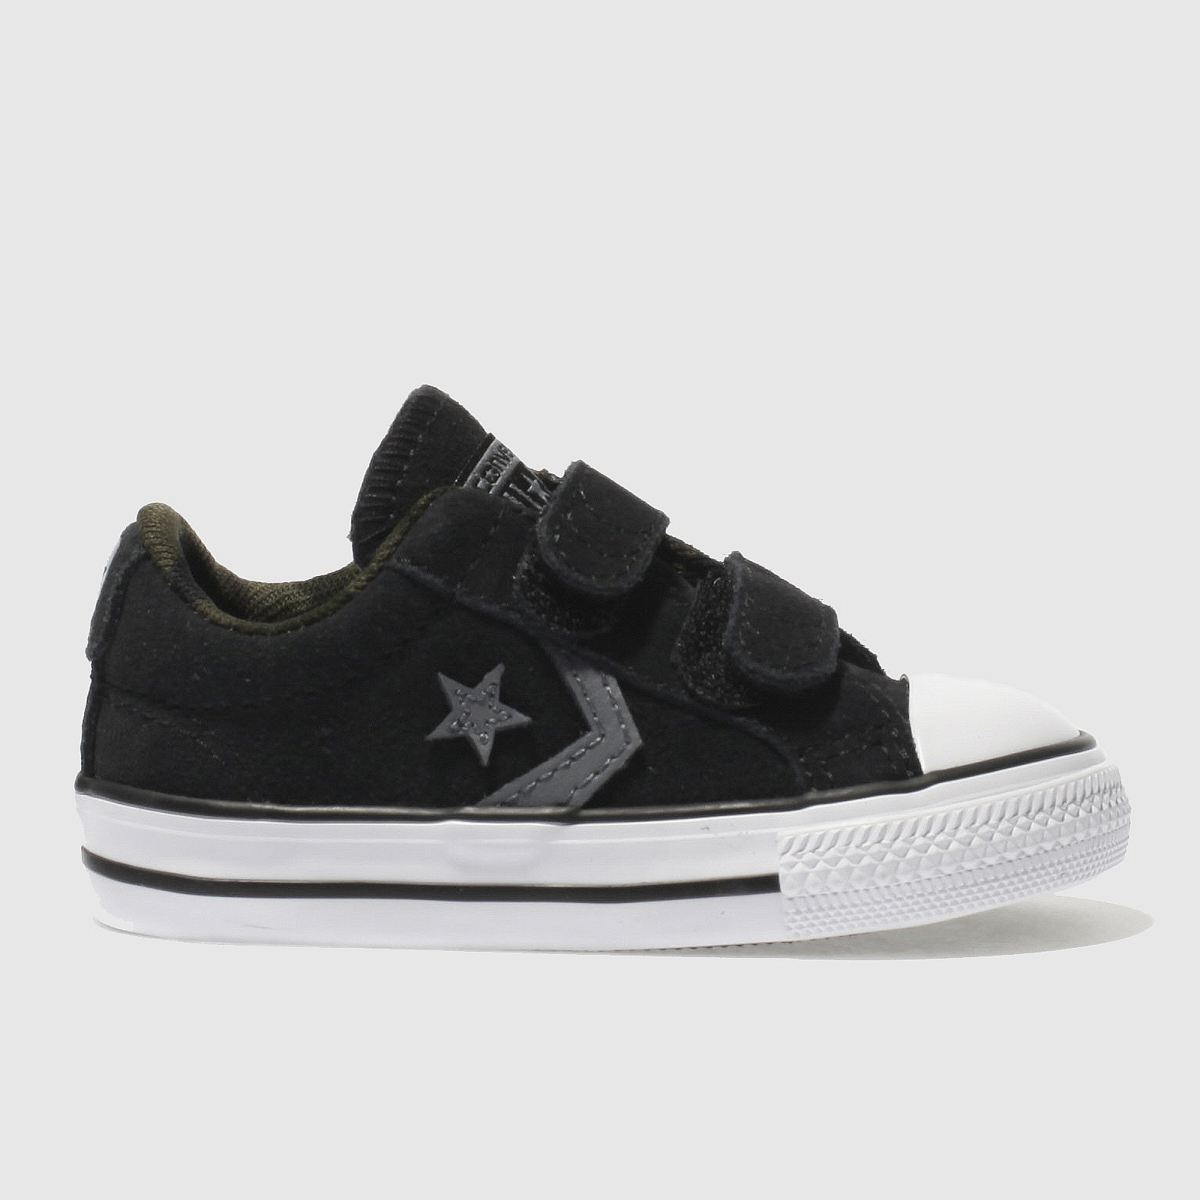 Converse Black & Grey Star Player 2v Unisex Toddler Toddler